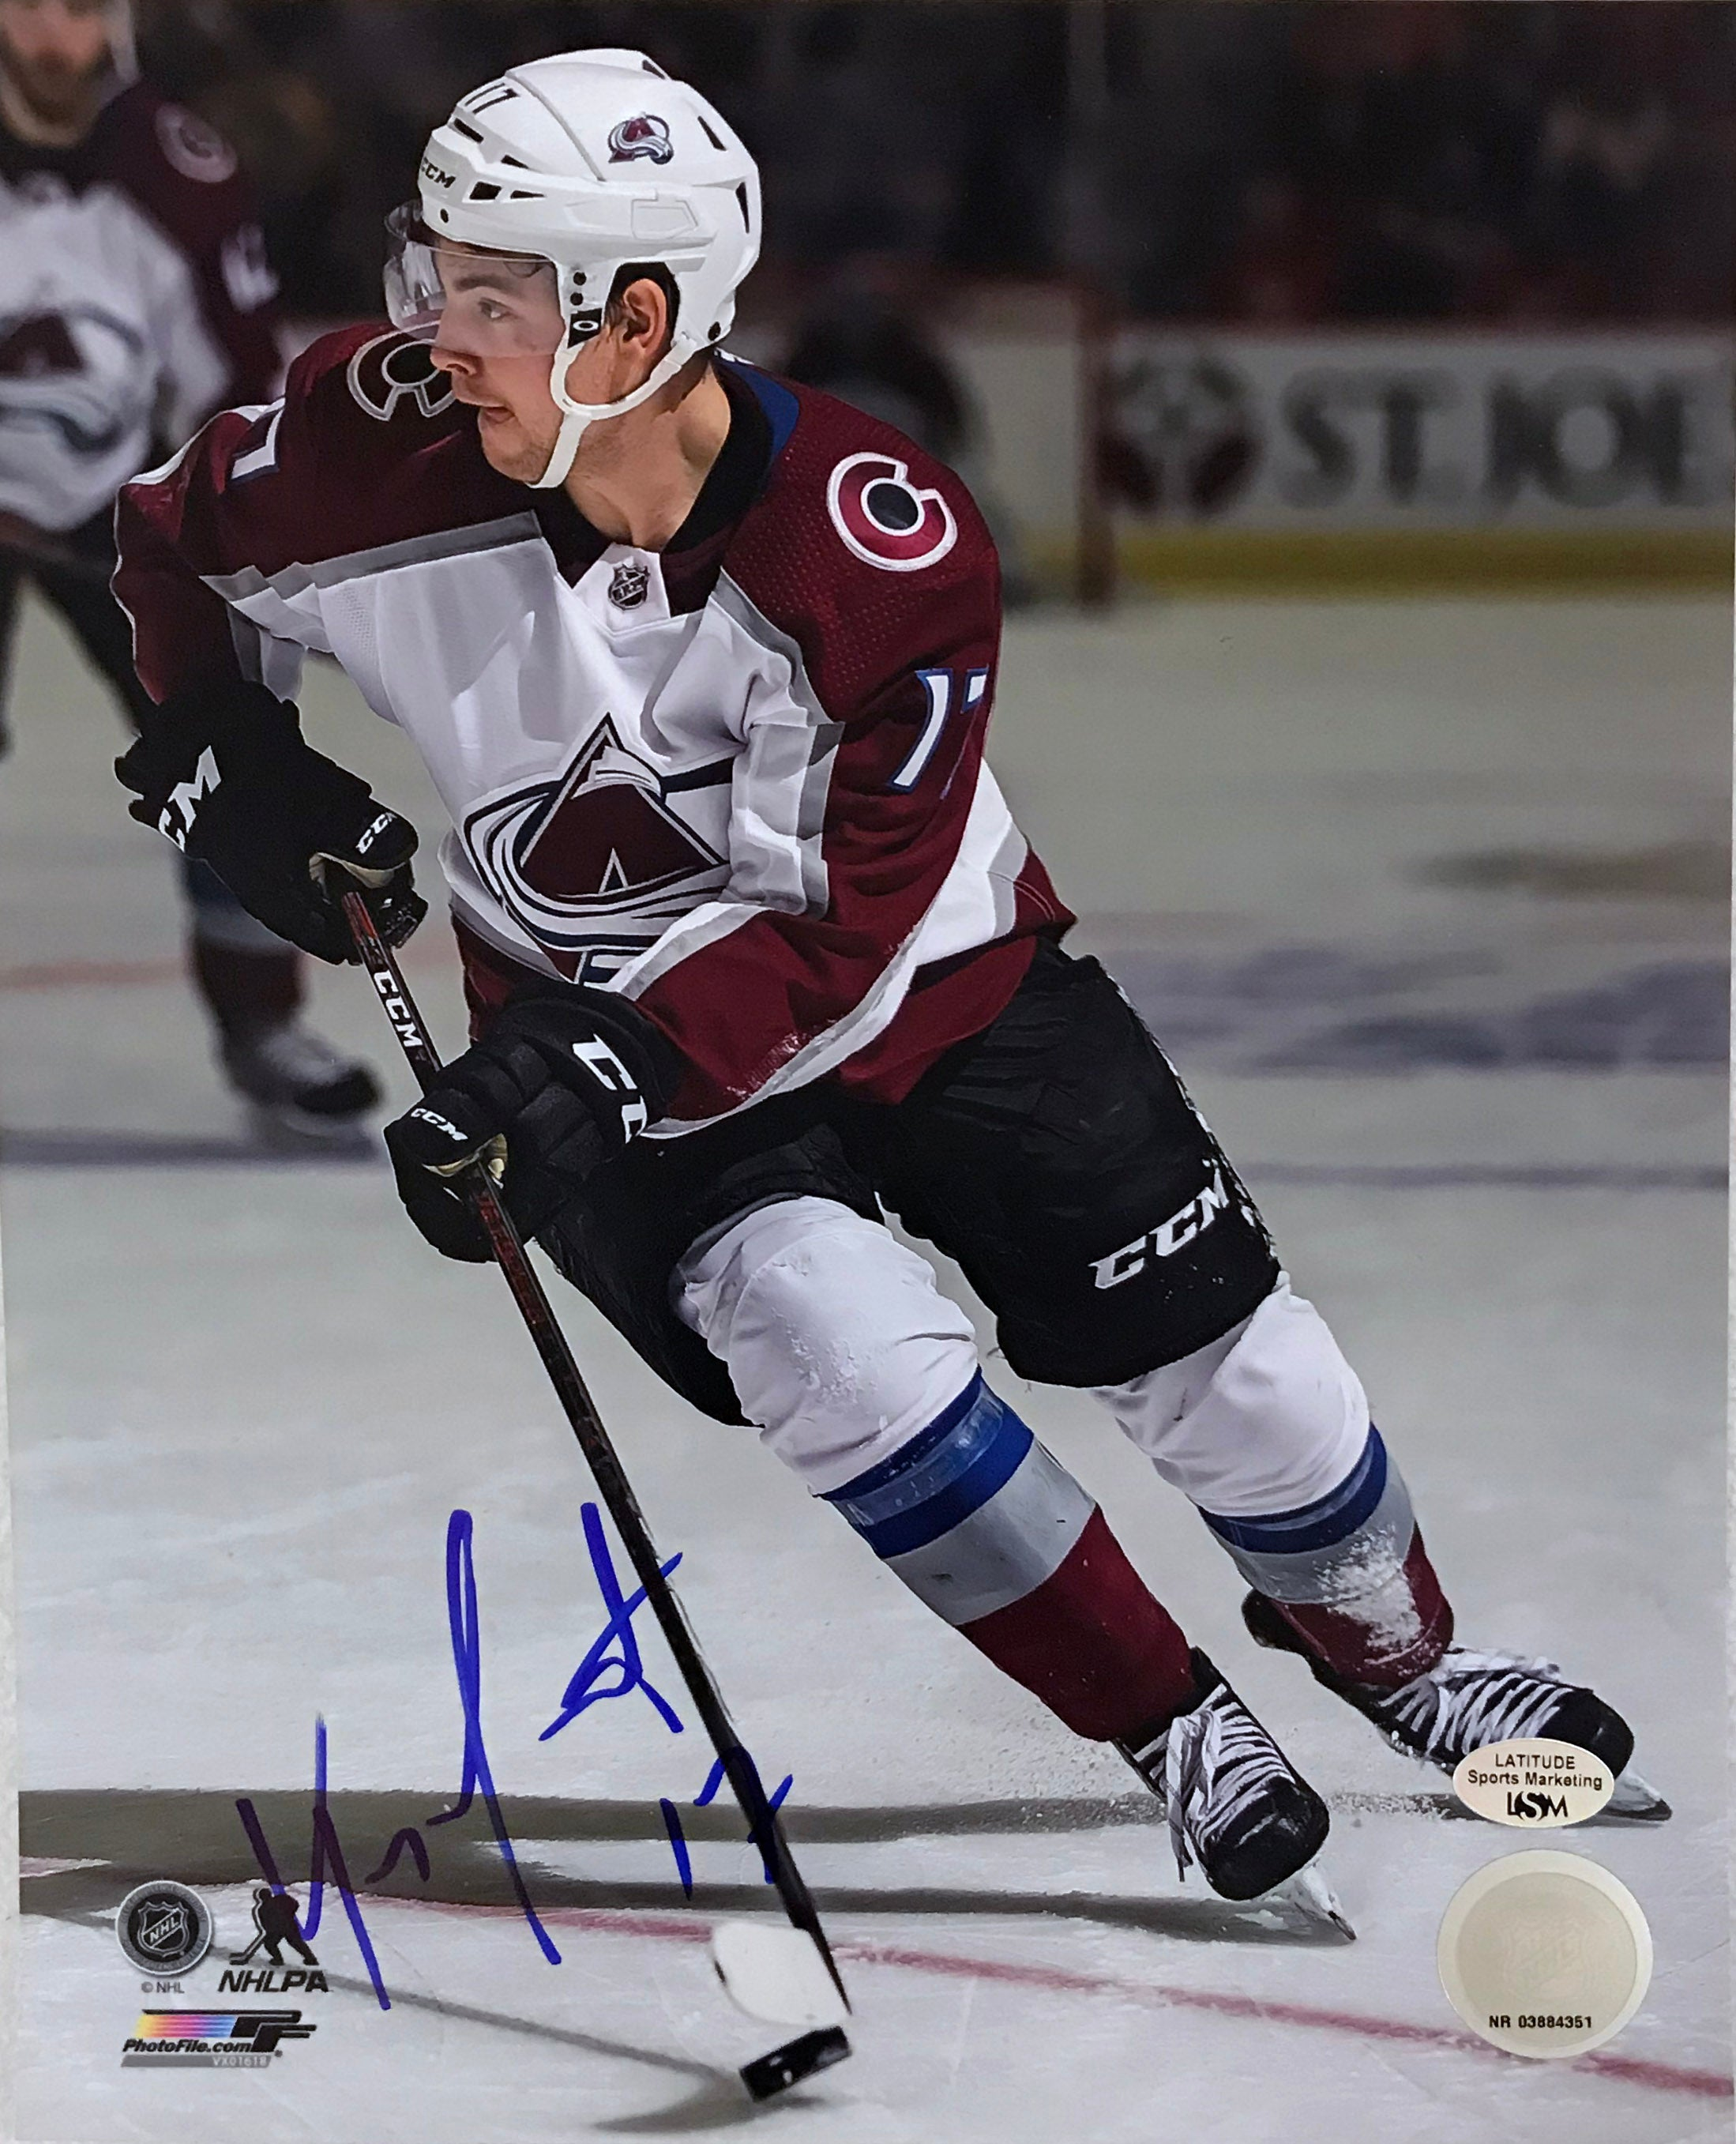 Tyson Jost Signed 8x10 Photo - Latitude Sports Marketing